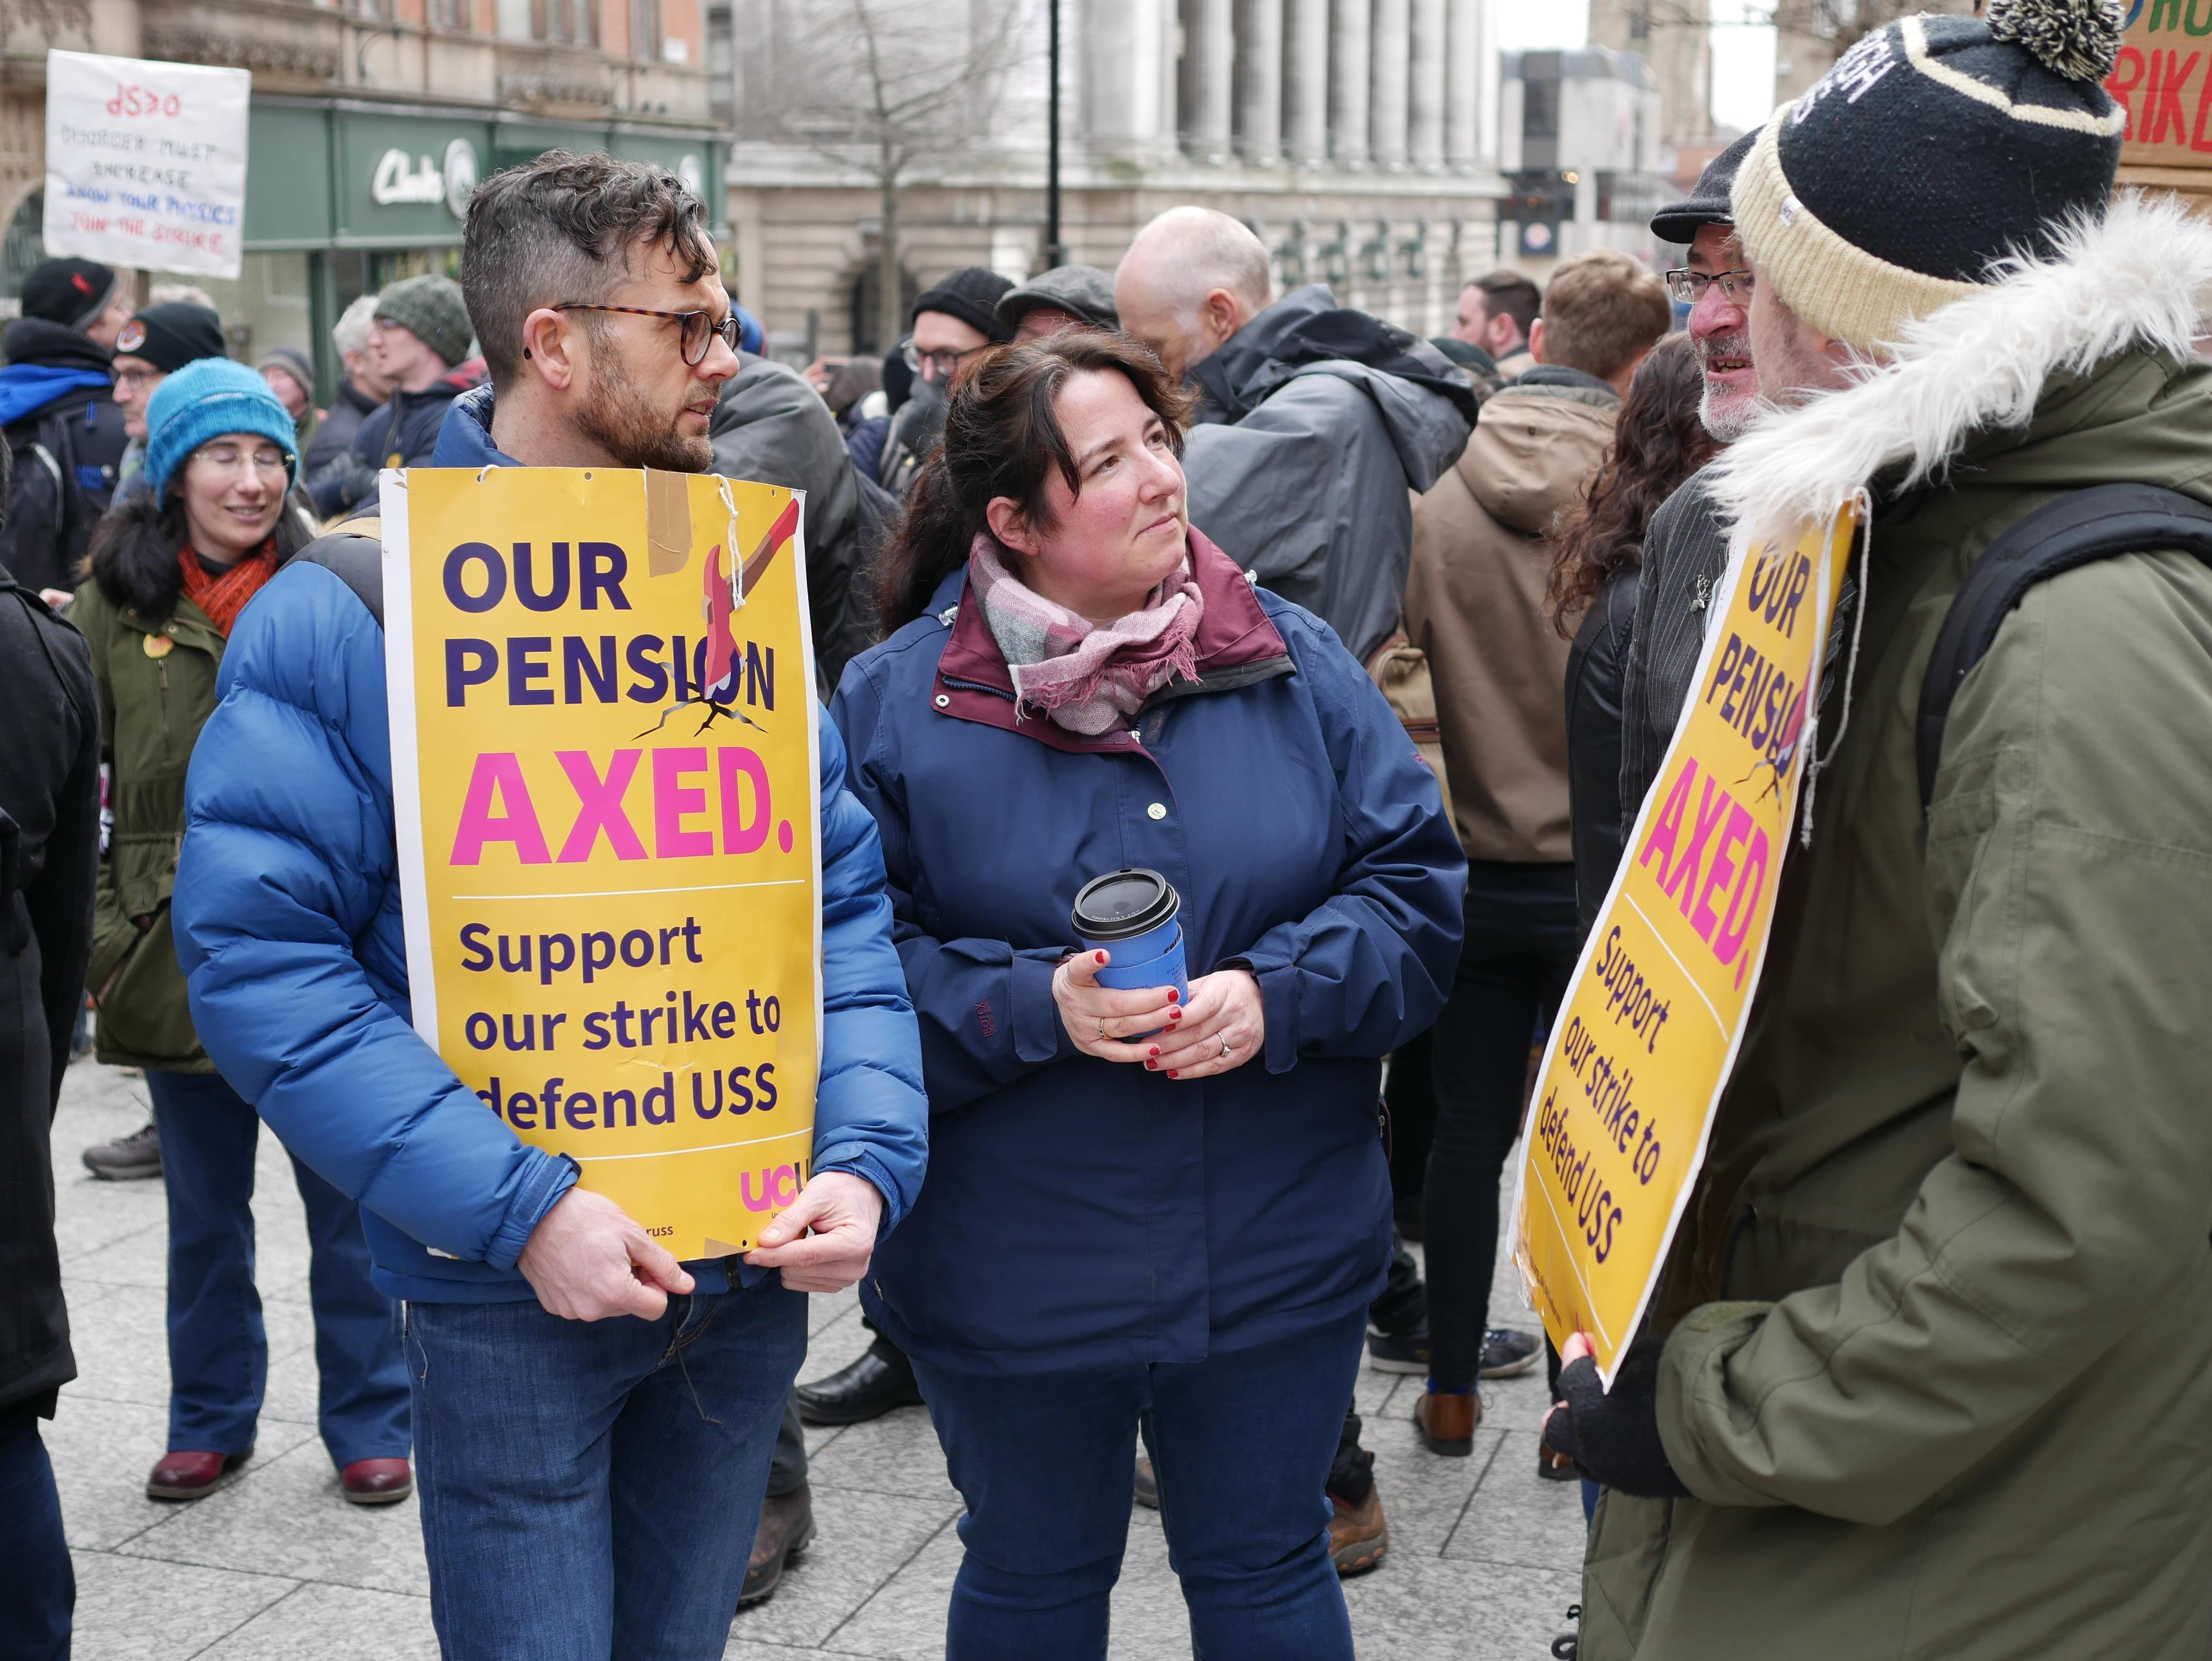 University lectures' strike is off as both parties walk back pension demands